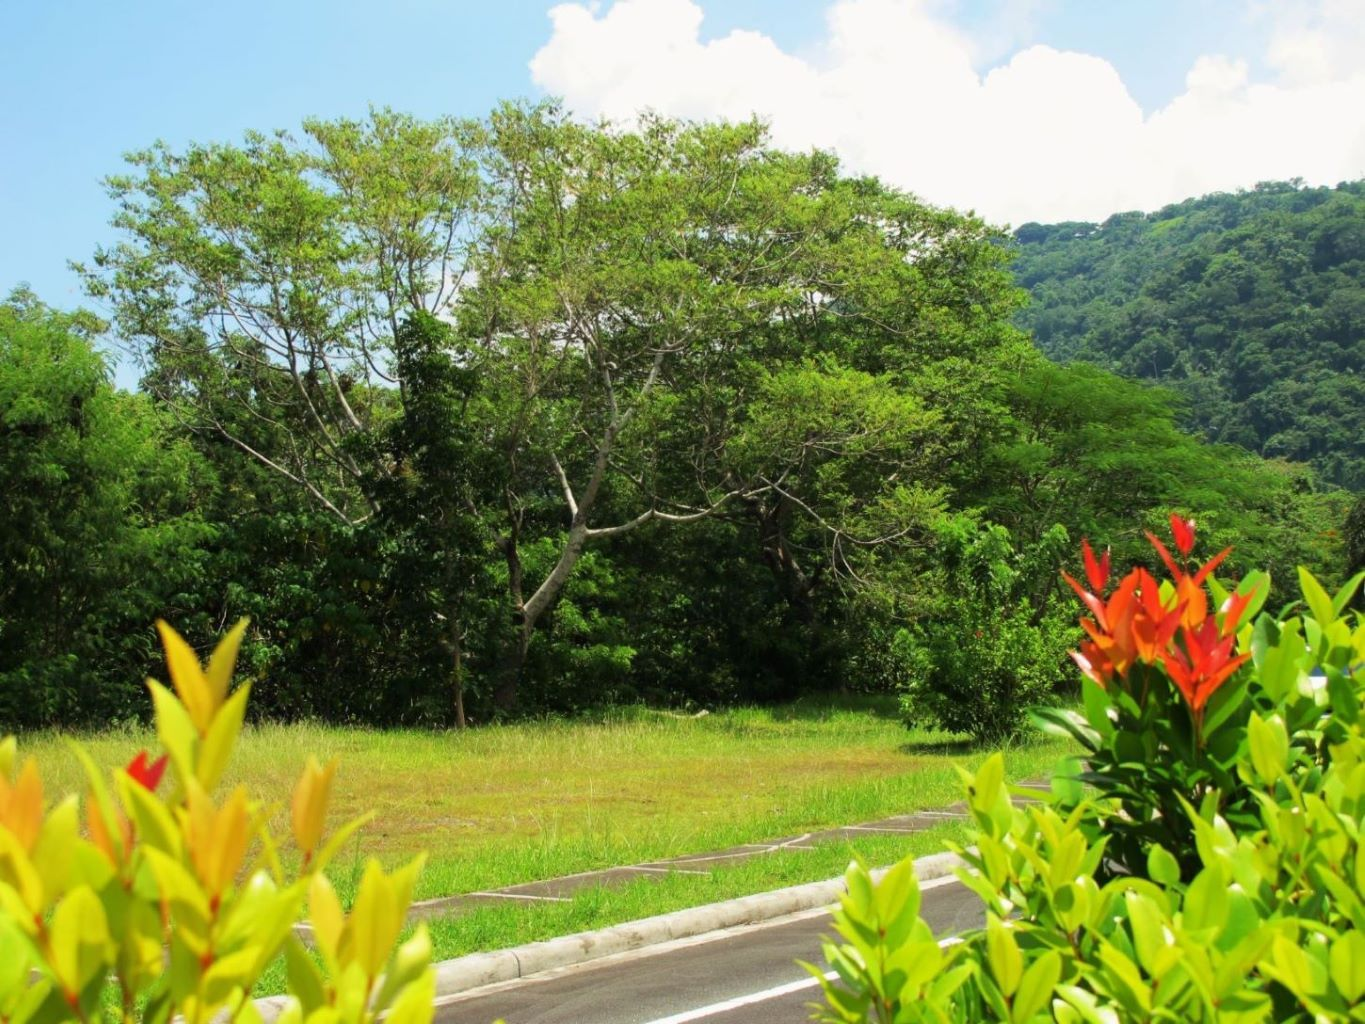 The Lot for Sale at Pueblo Real village in Tagaytay Highlands